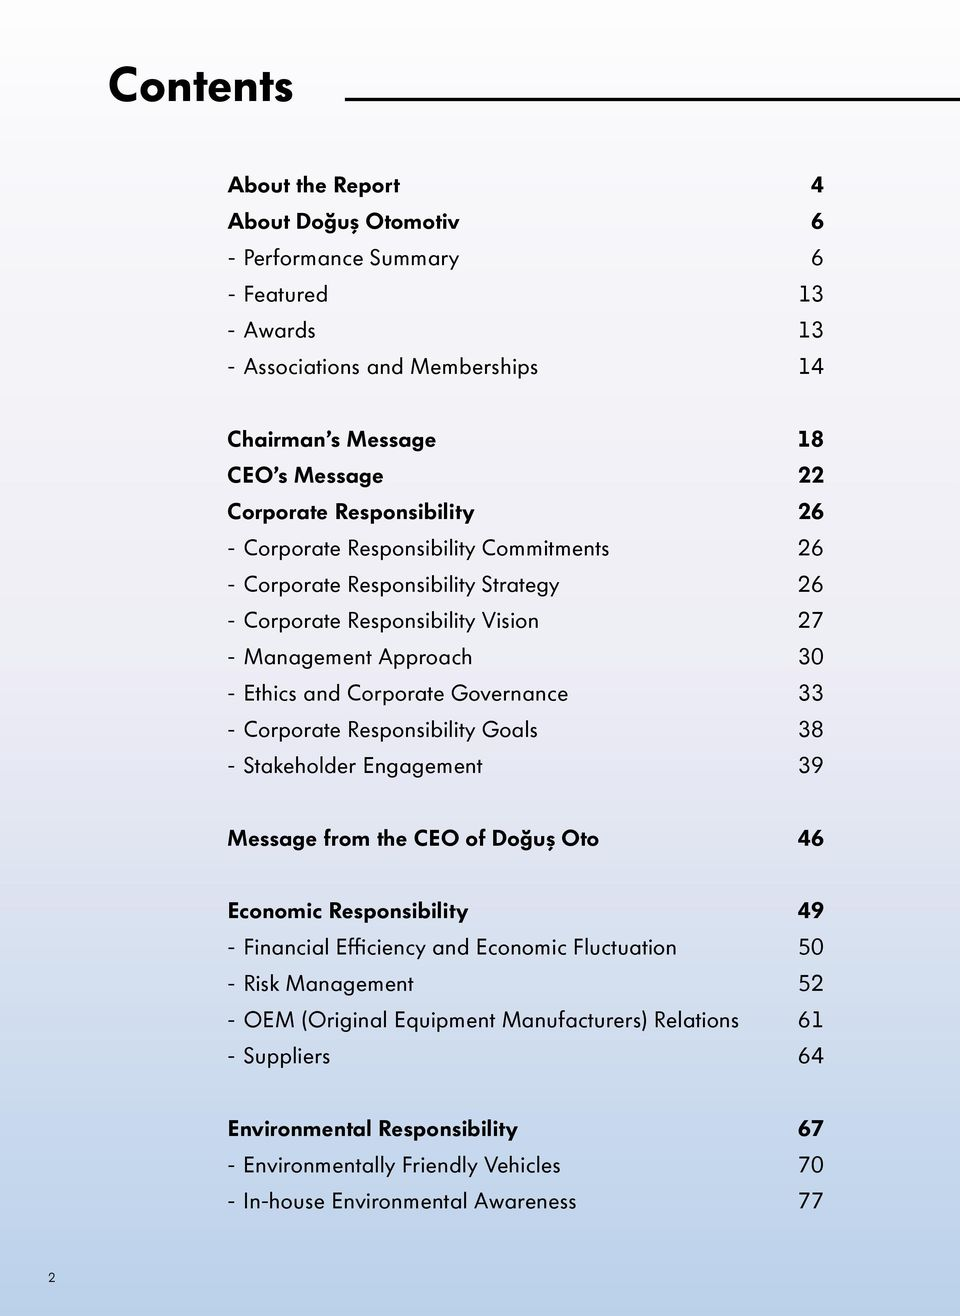 Governance 33 - Corporate Responsibility Goals 38 - Stakeholder Engagement 39 Message from the CEO of Doğuş Oto 46 Economic Responsibility 49 - Financial Efficiency and Economic Fluctuation